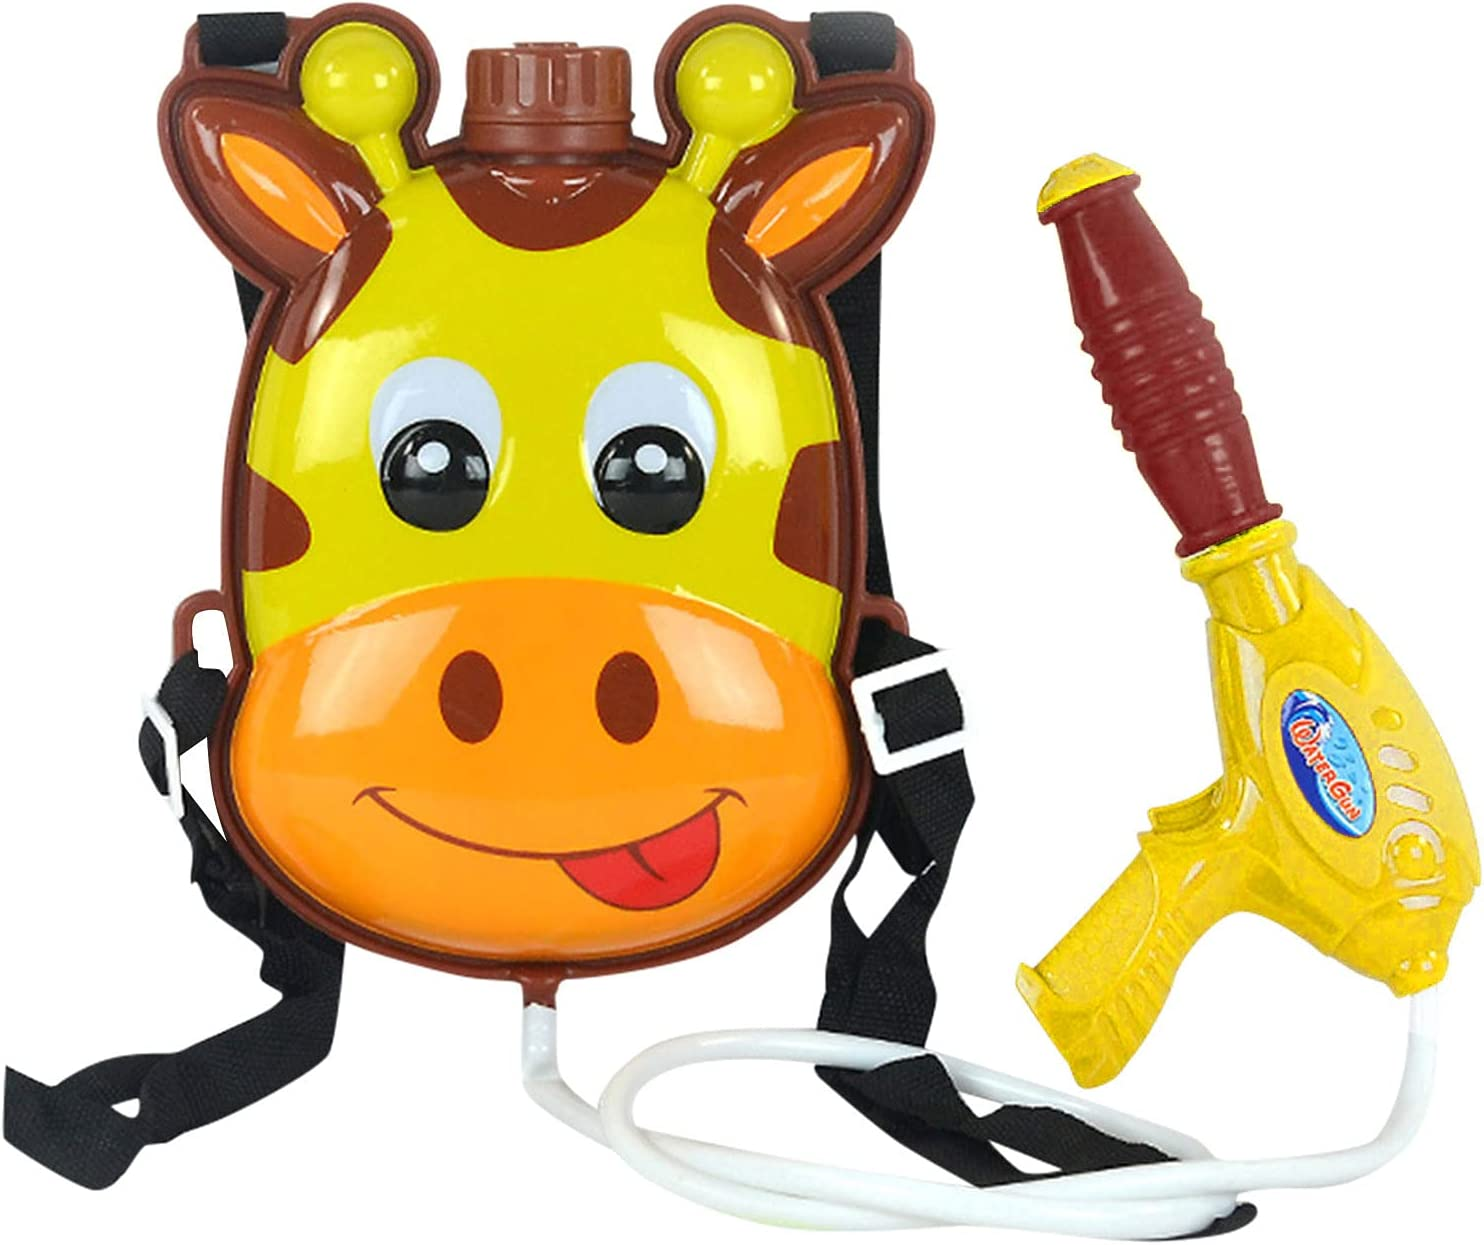 ZHIFENGMAOYI Pull Max 72% OFF Department store Backpack Water Blaster for Shooter- Kids-Water